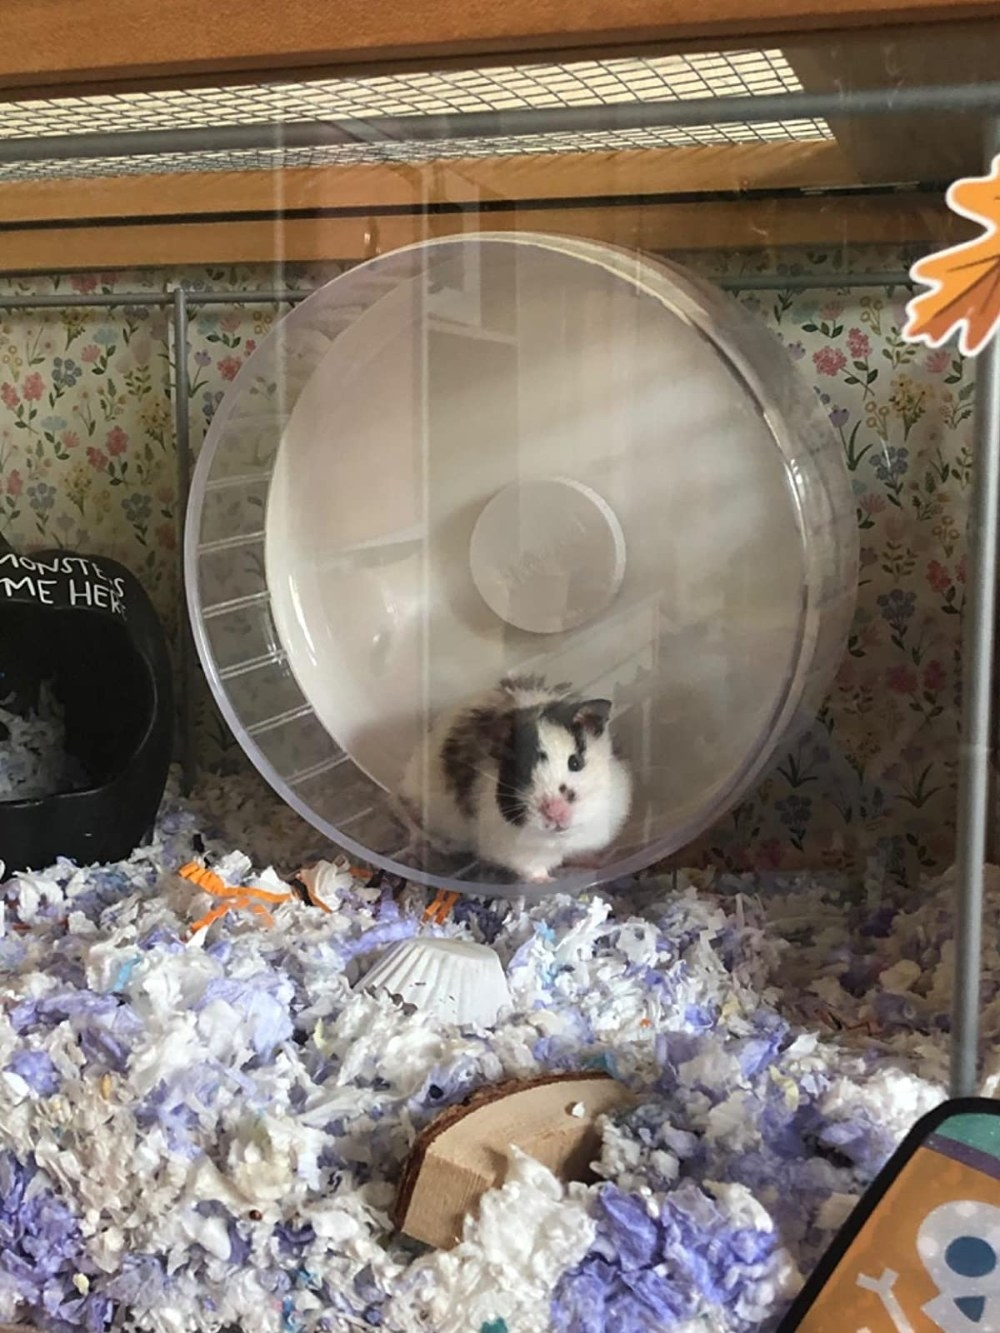 Review photo of the transparent hamster wheel